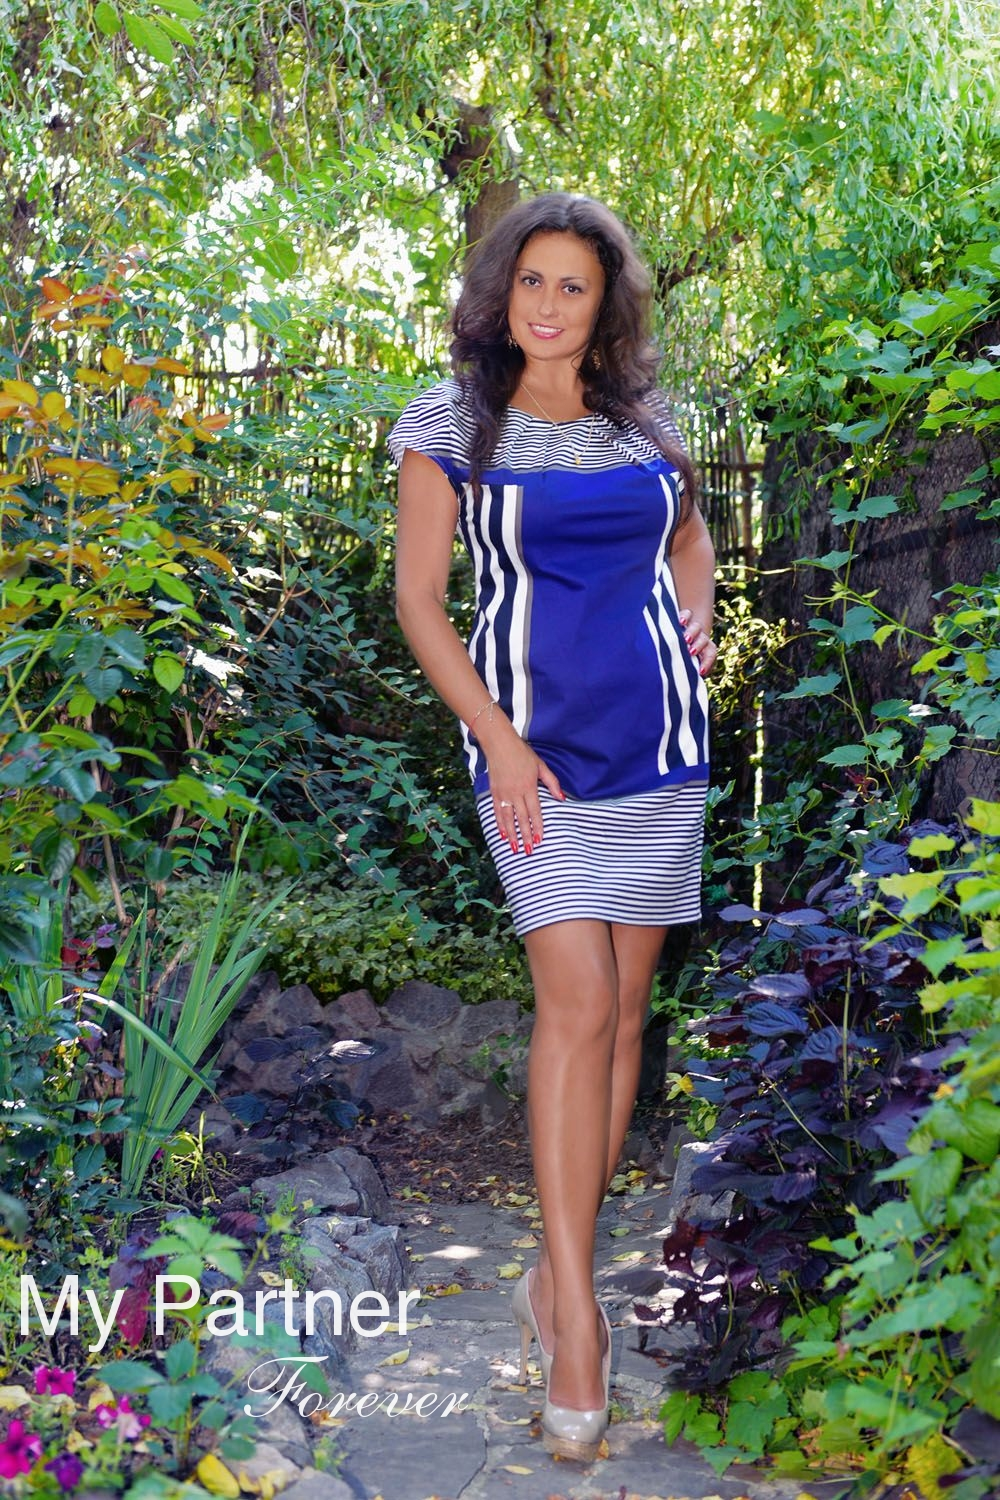 Gorgeous Woman from Ukraine - Elena from Kharkov, Ukraine